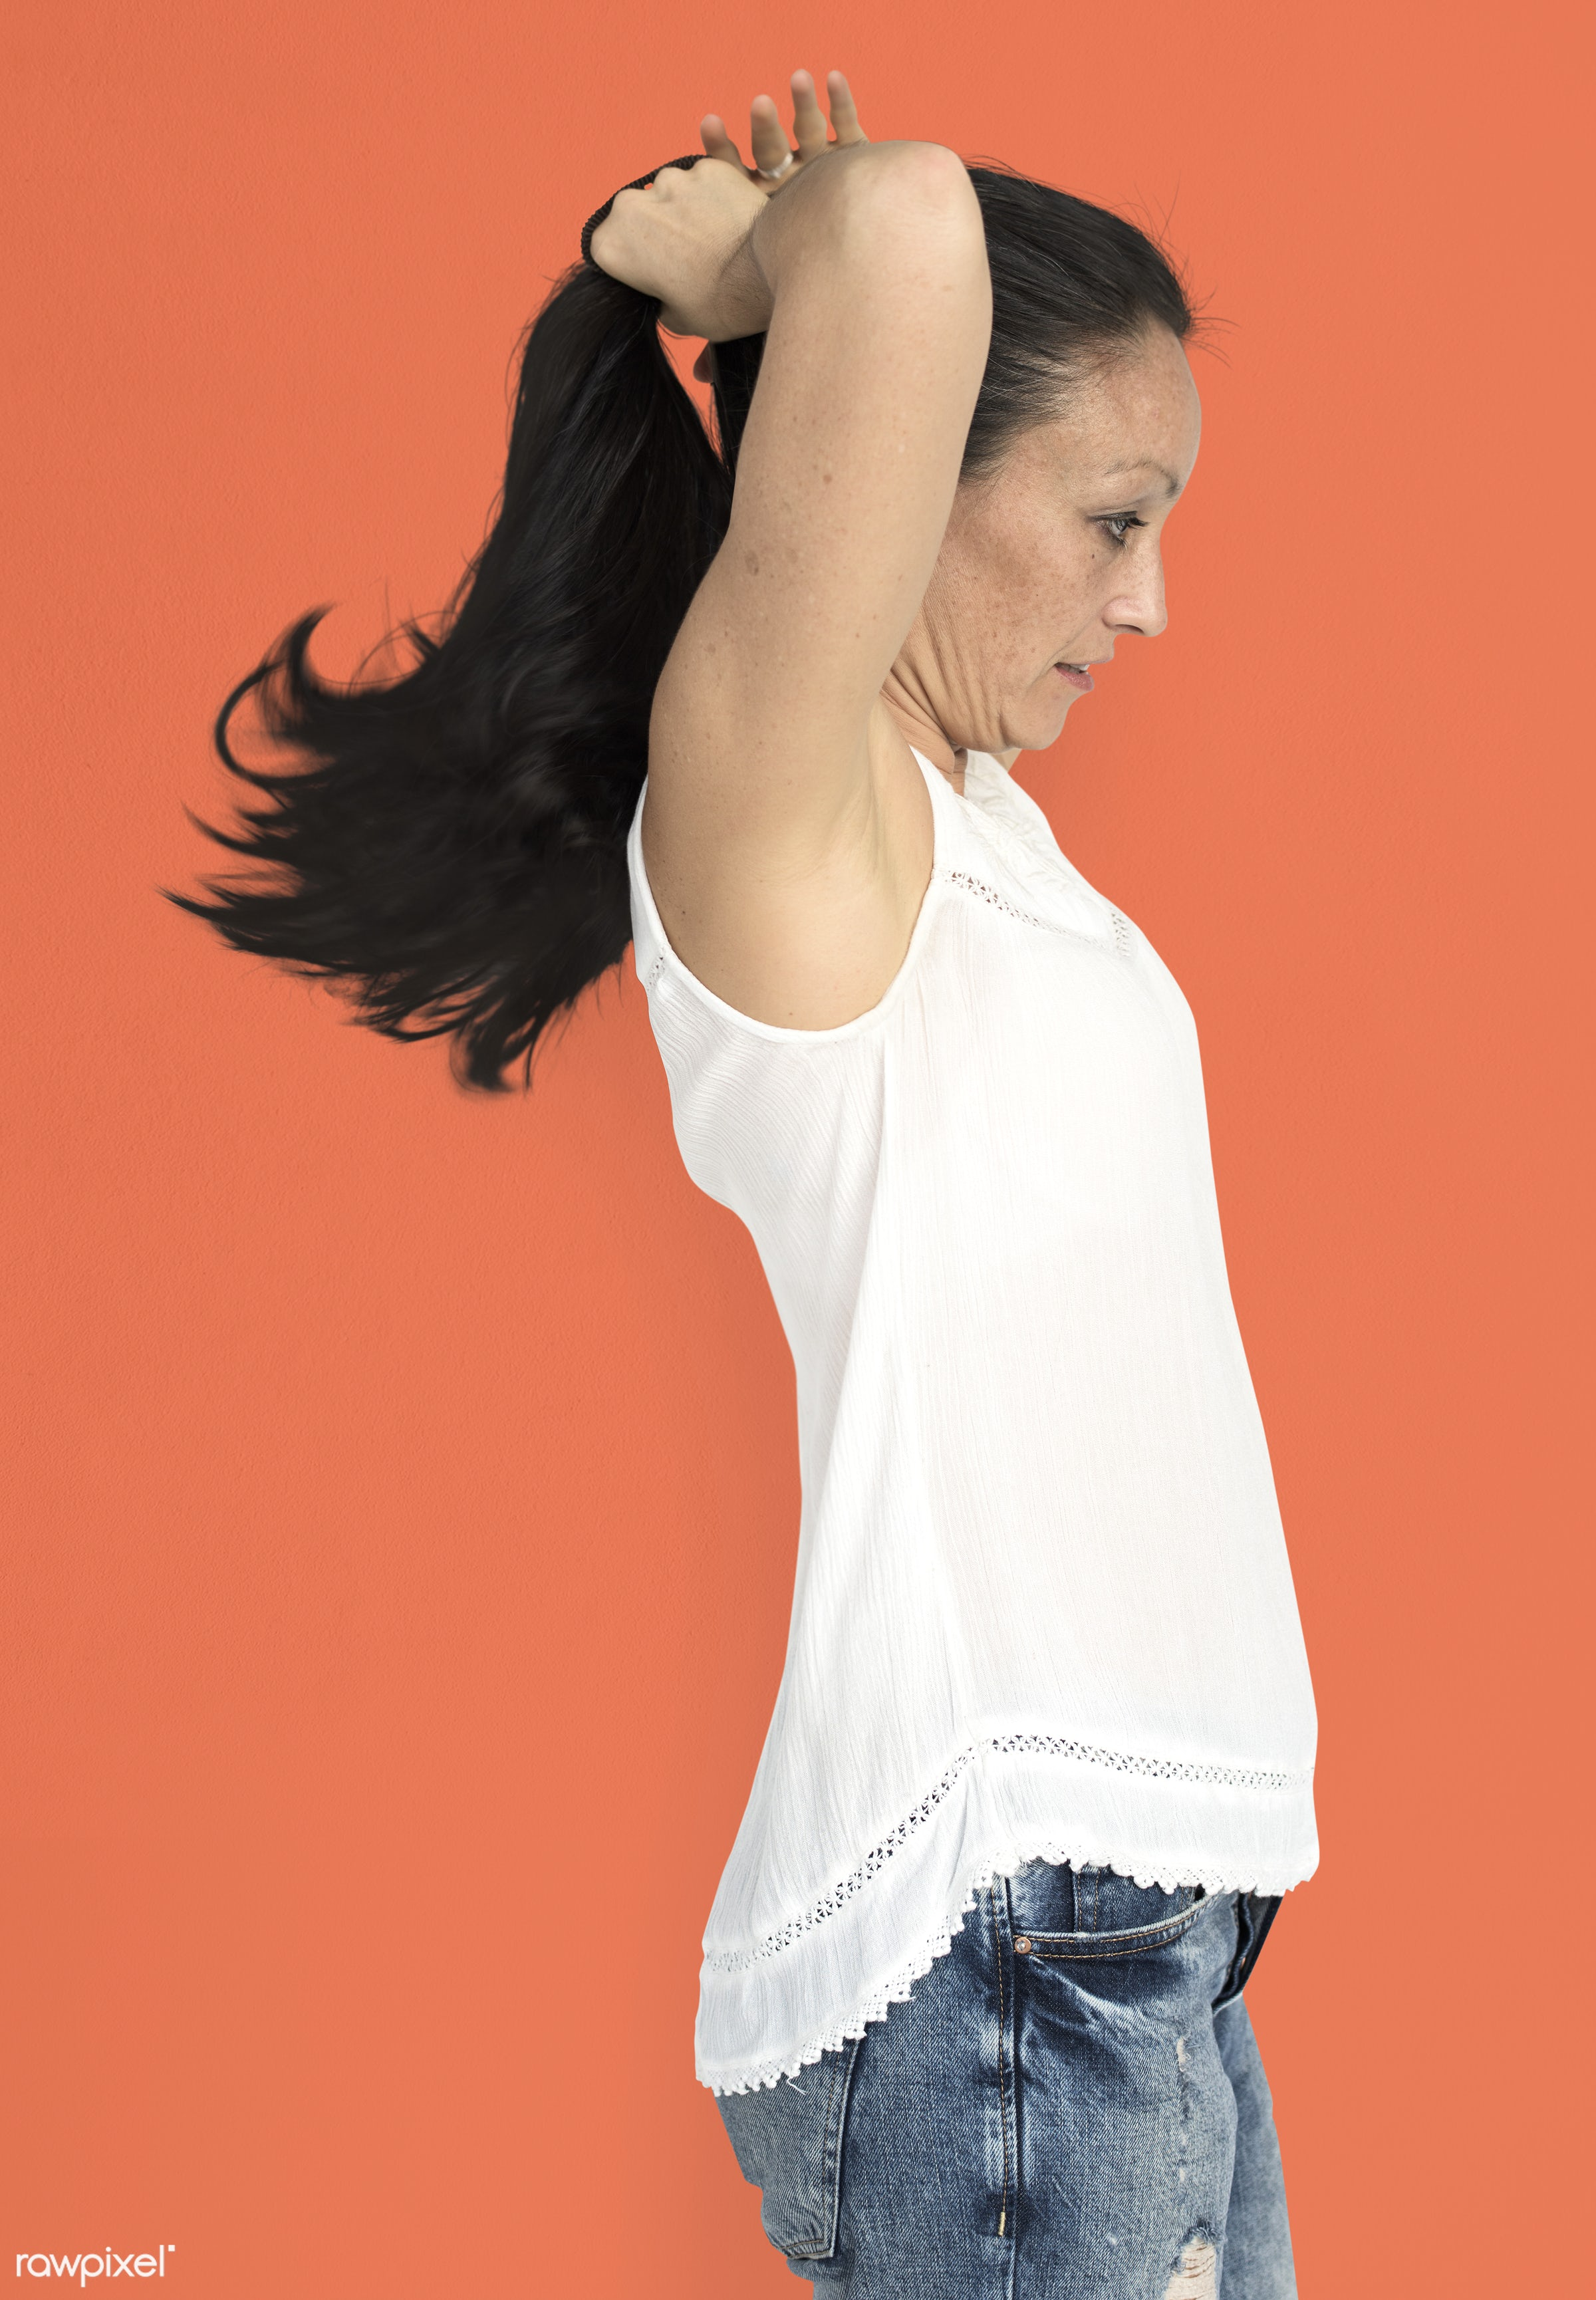 studio, model, person, people, race, style, solo, woman, lifestyle, casual, feminism, hair, isolated, orange, gesture,...